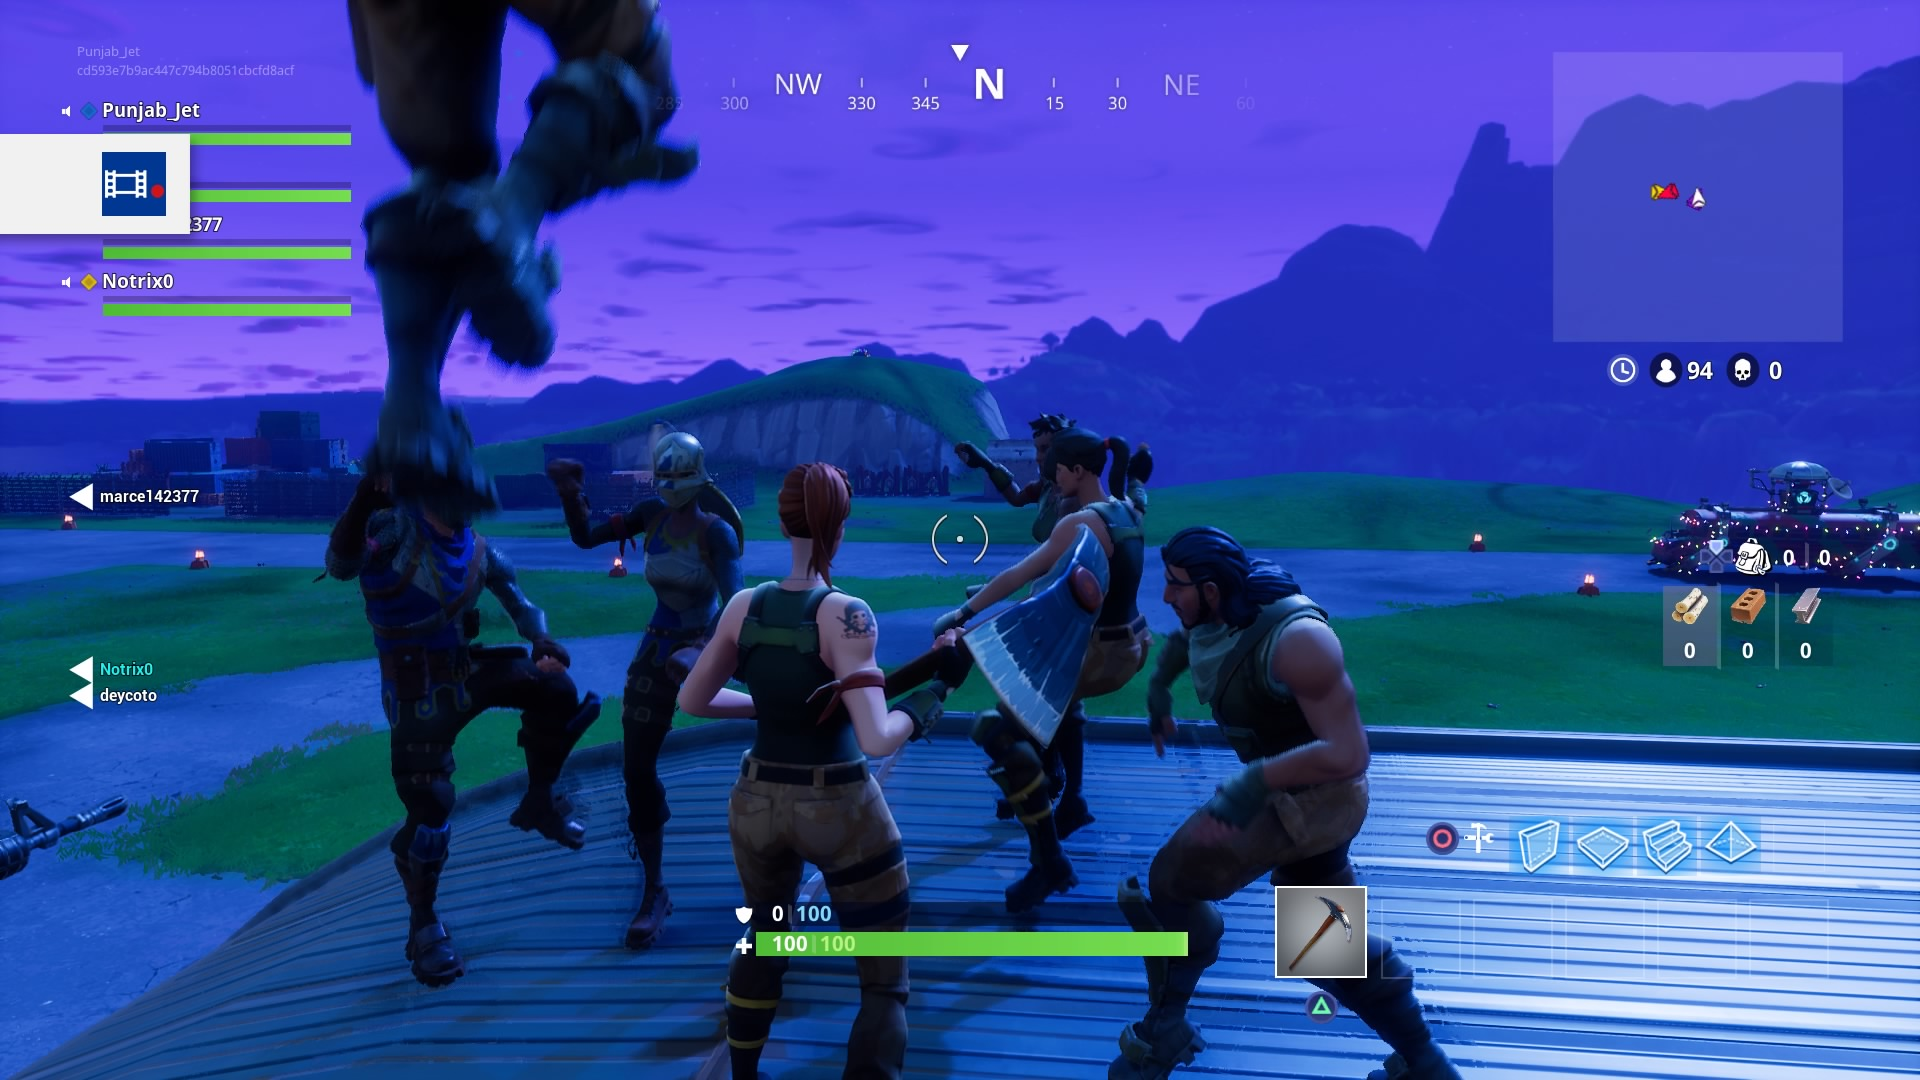 Fortnite Dance Party Wallpaper 63020